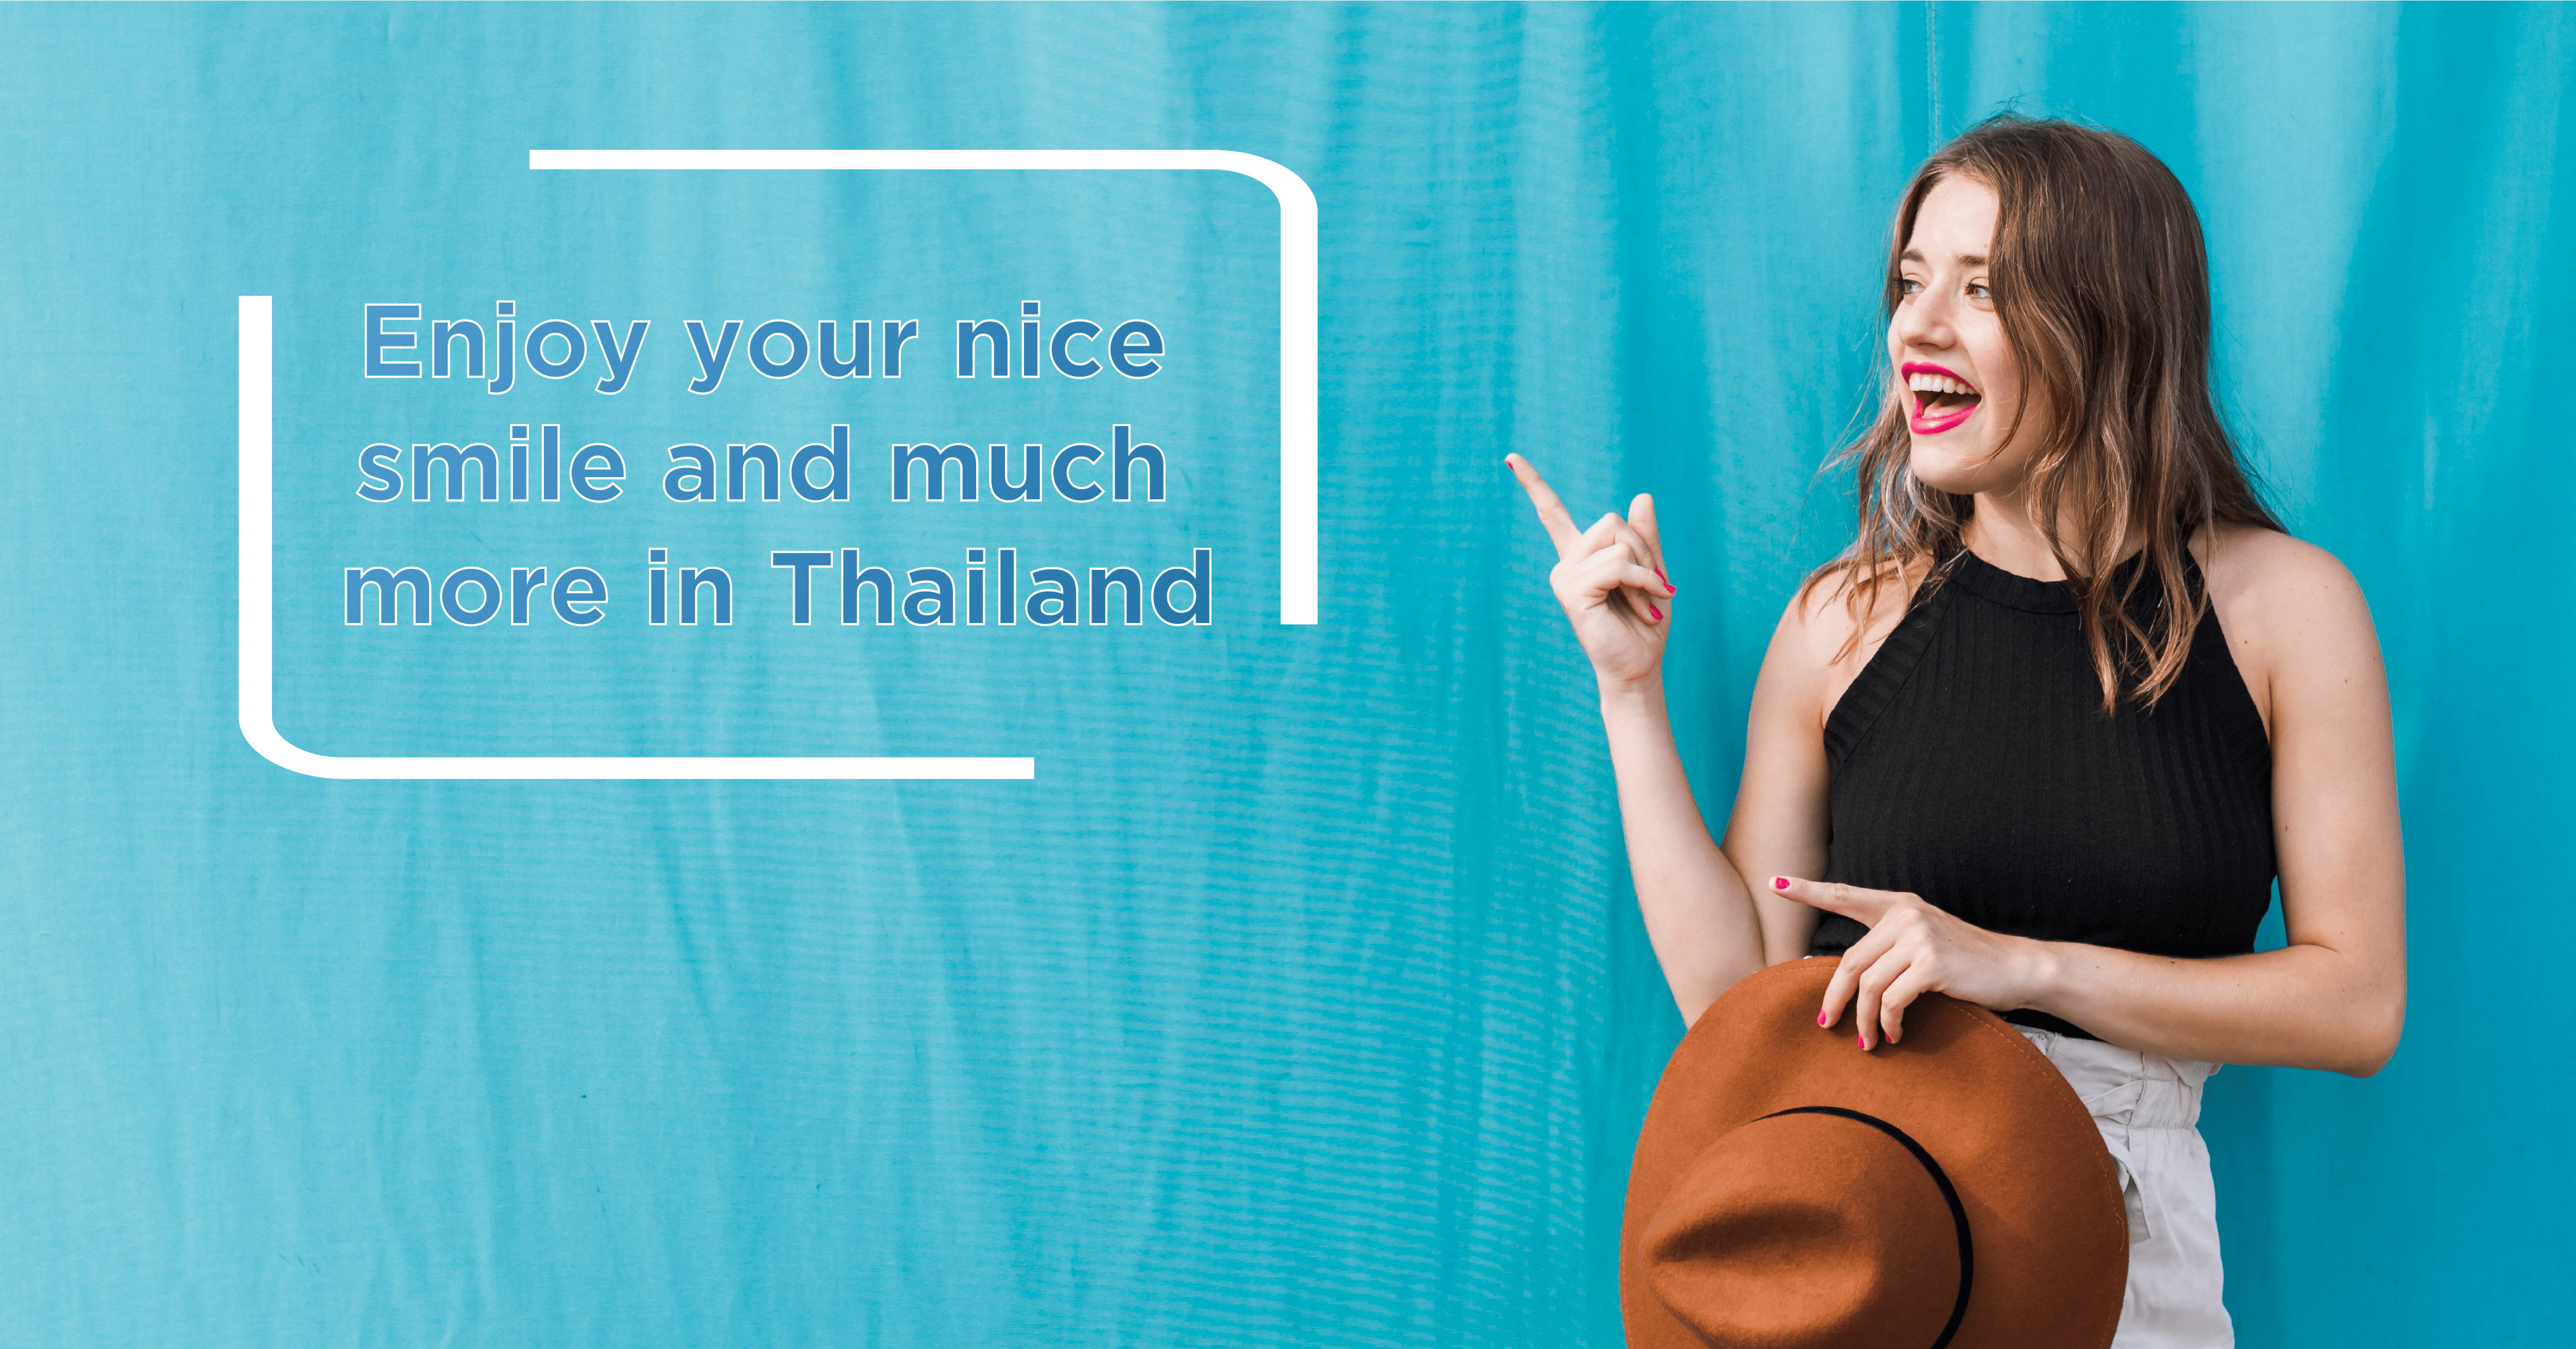 Enjoy your nice smile and much more in Thailand